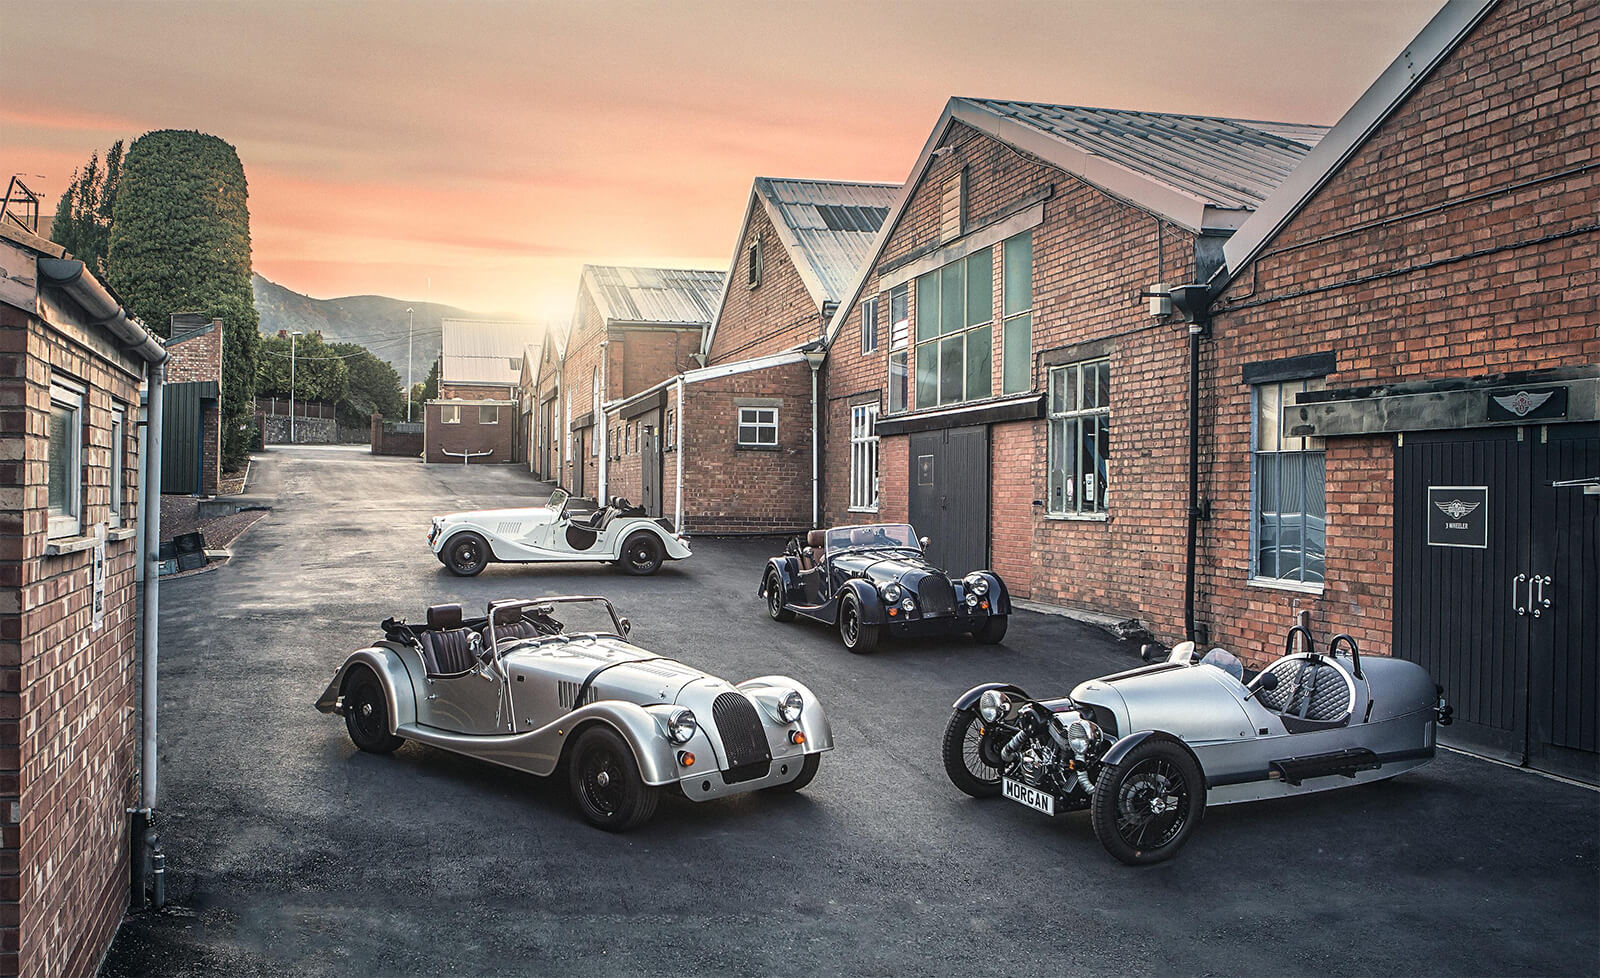 Morgan Introduces Three New Models to Celebrate its 110th Anniversary